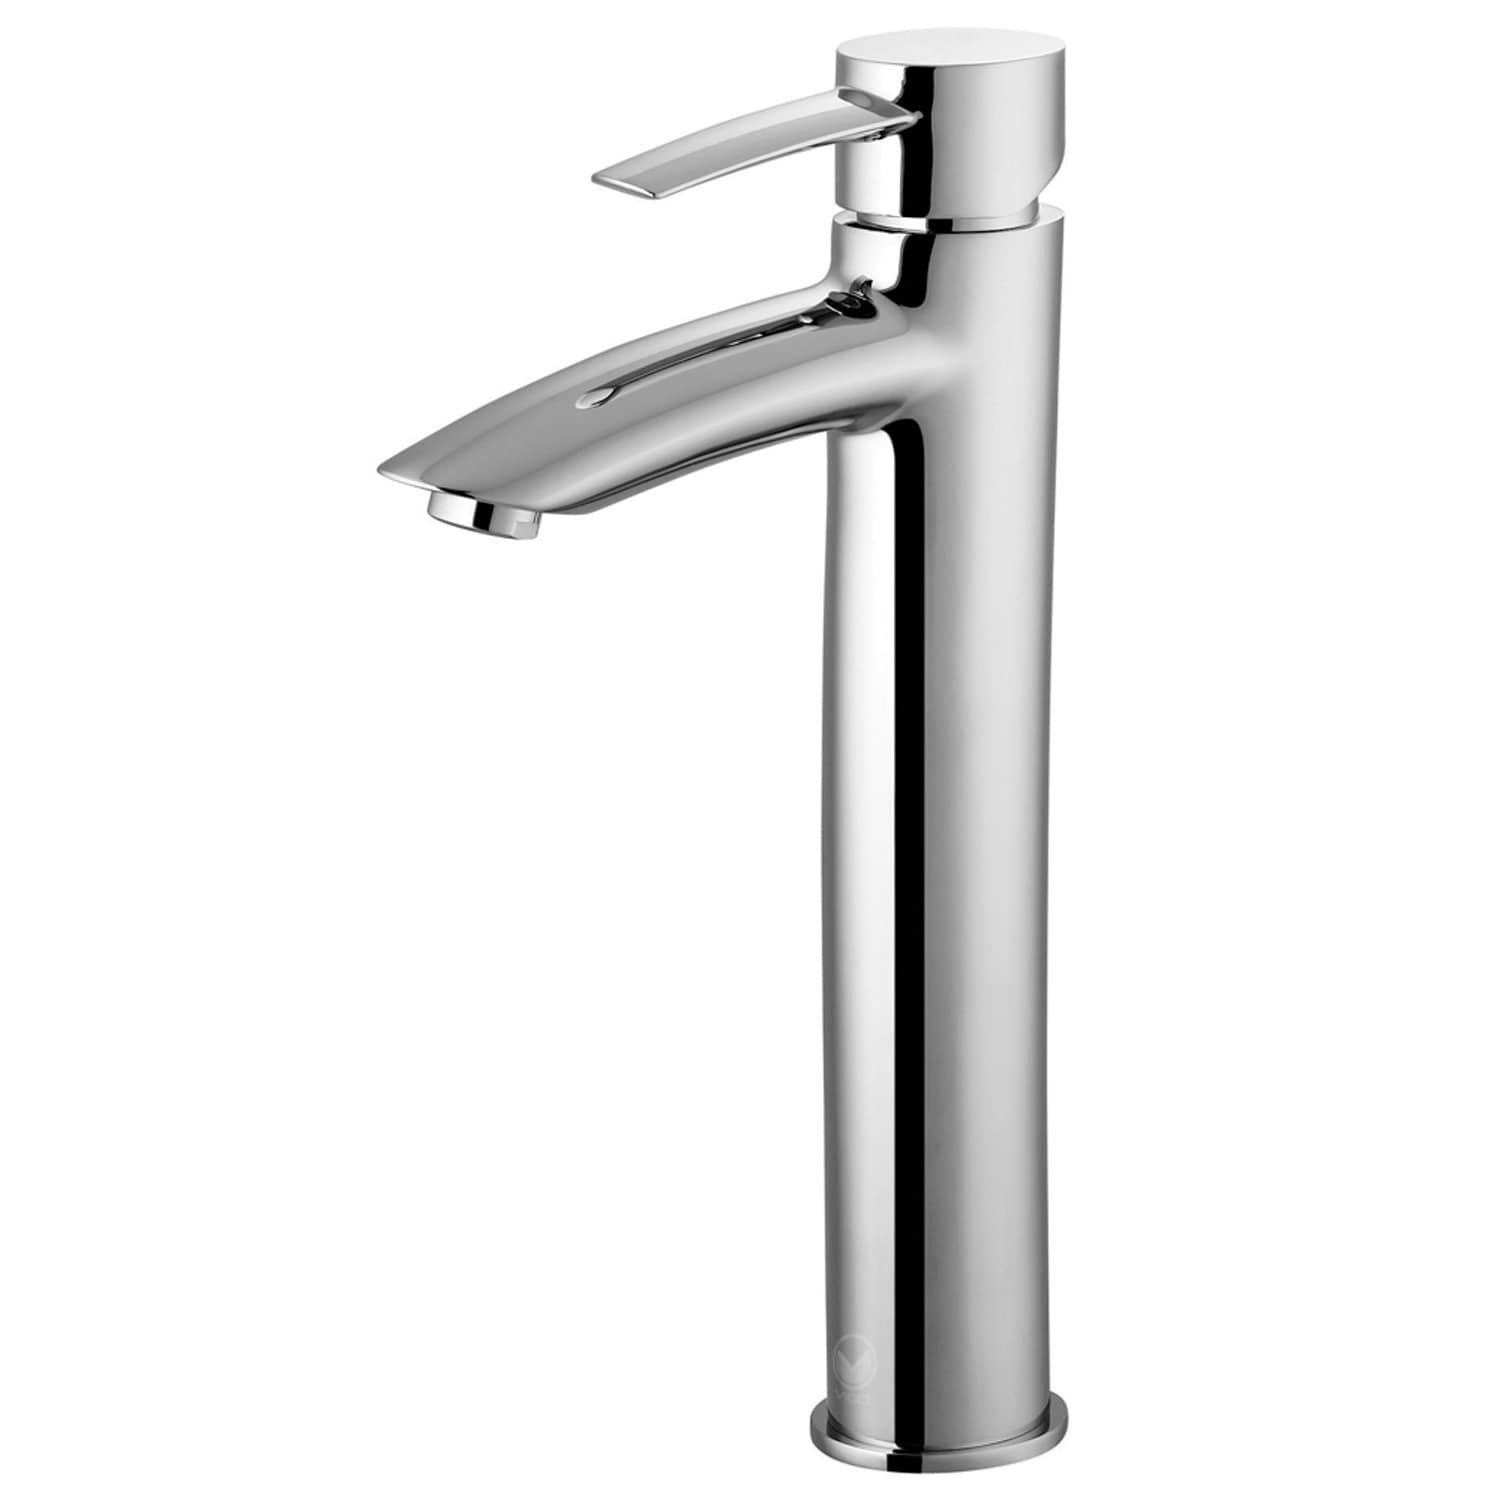 VIGO Shadow Bathroom Vessel Faucet in Chrome